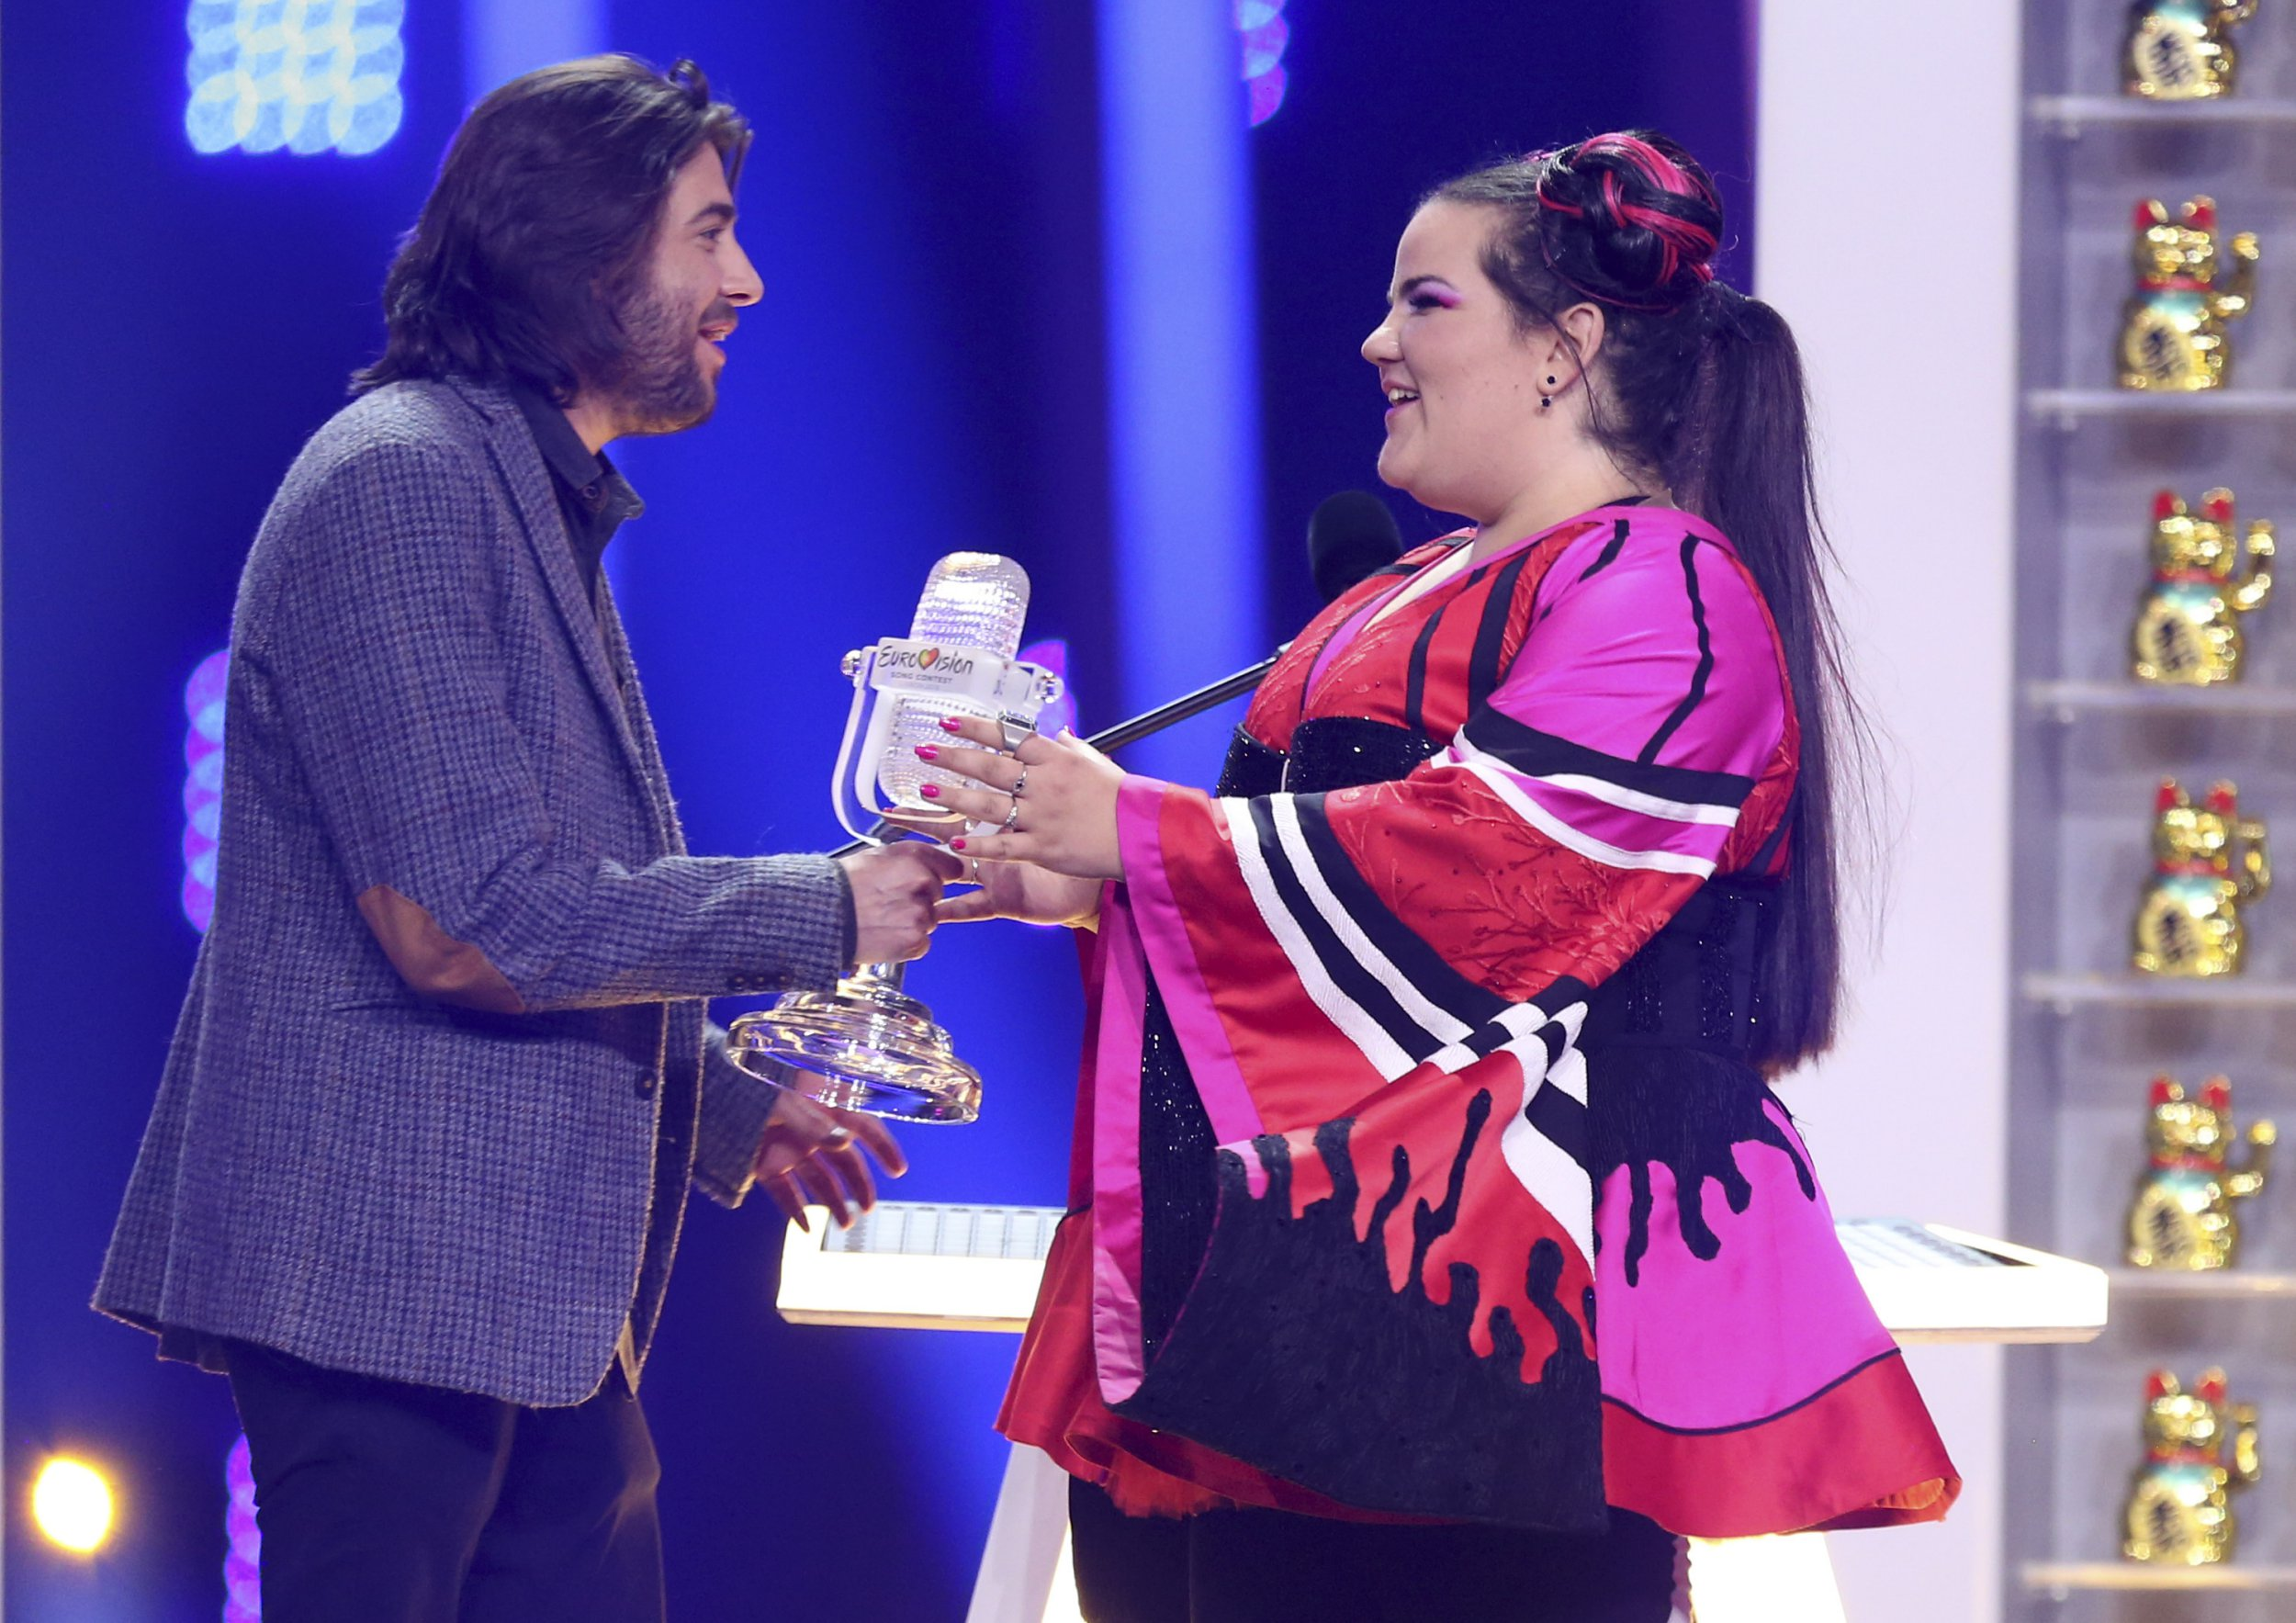 Salvador Sobral hands Netta the 2018 Eurovision trophy after calling Israel's winning song Toy 'horrible'